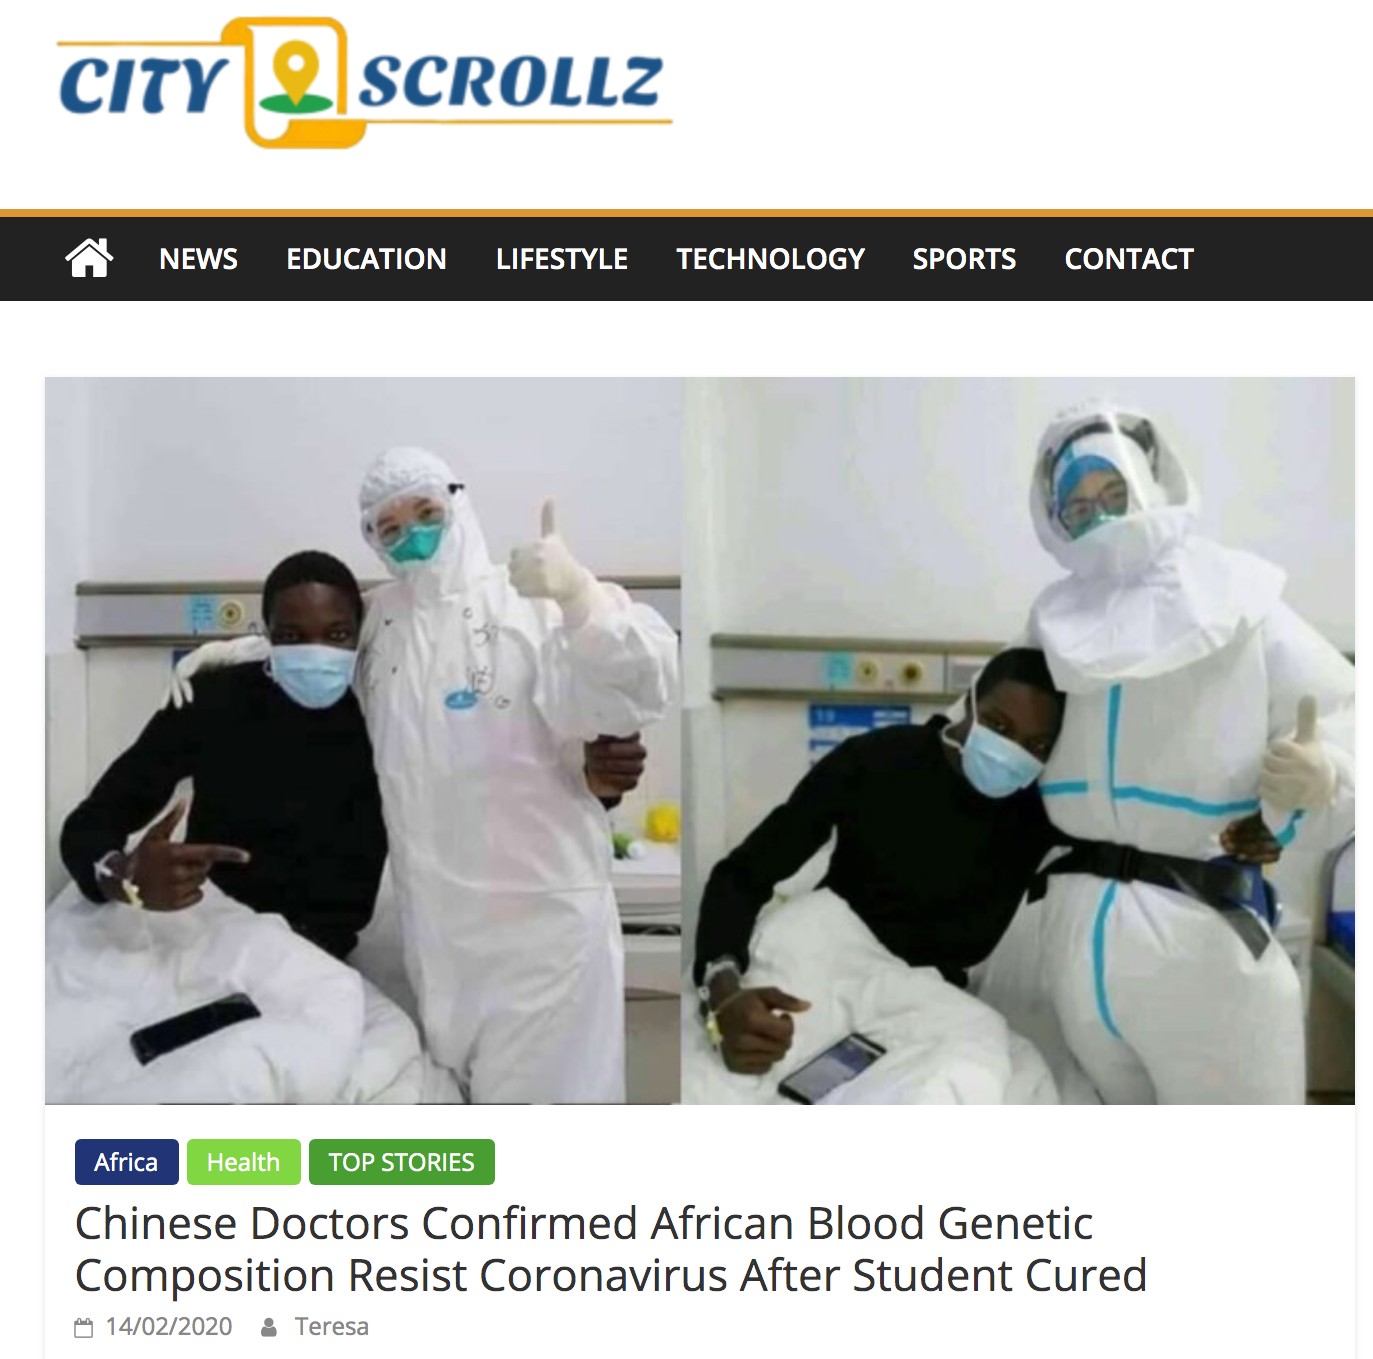 Article suggesting African blood resists the coronavirus